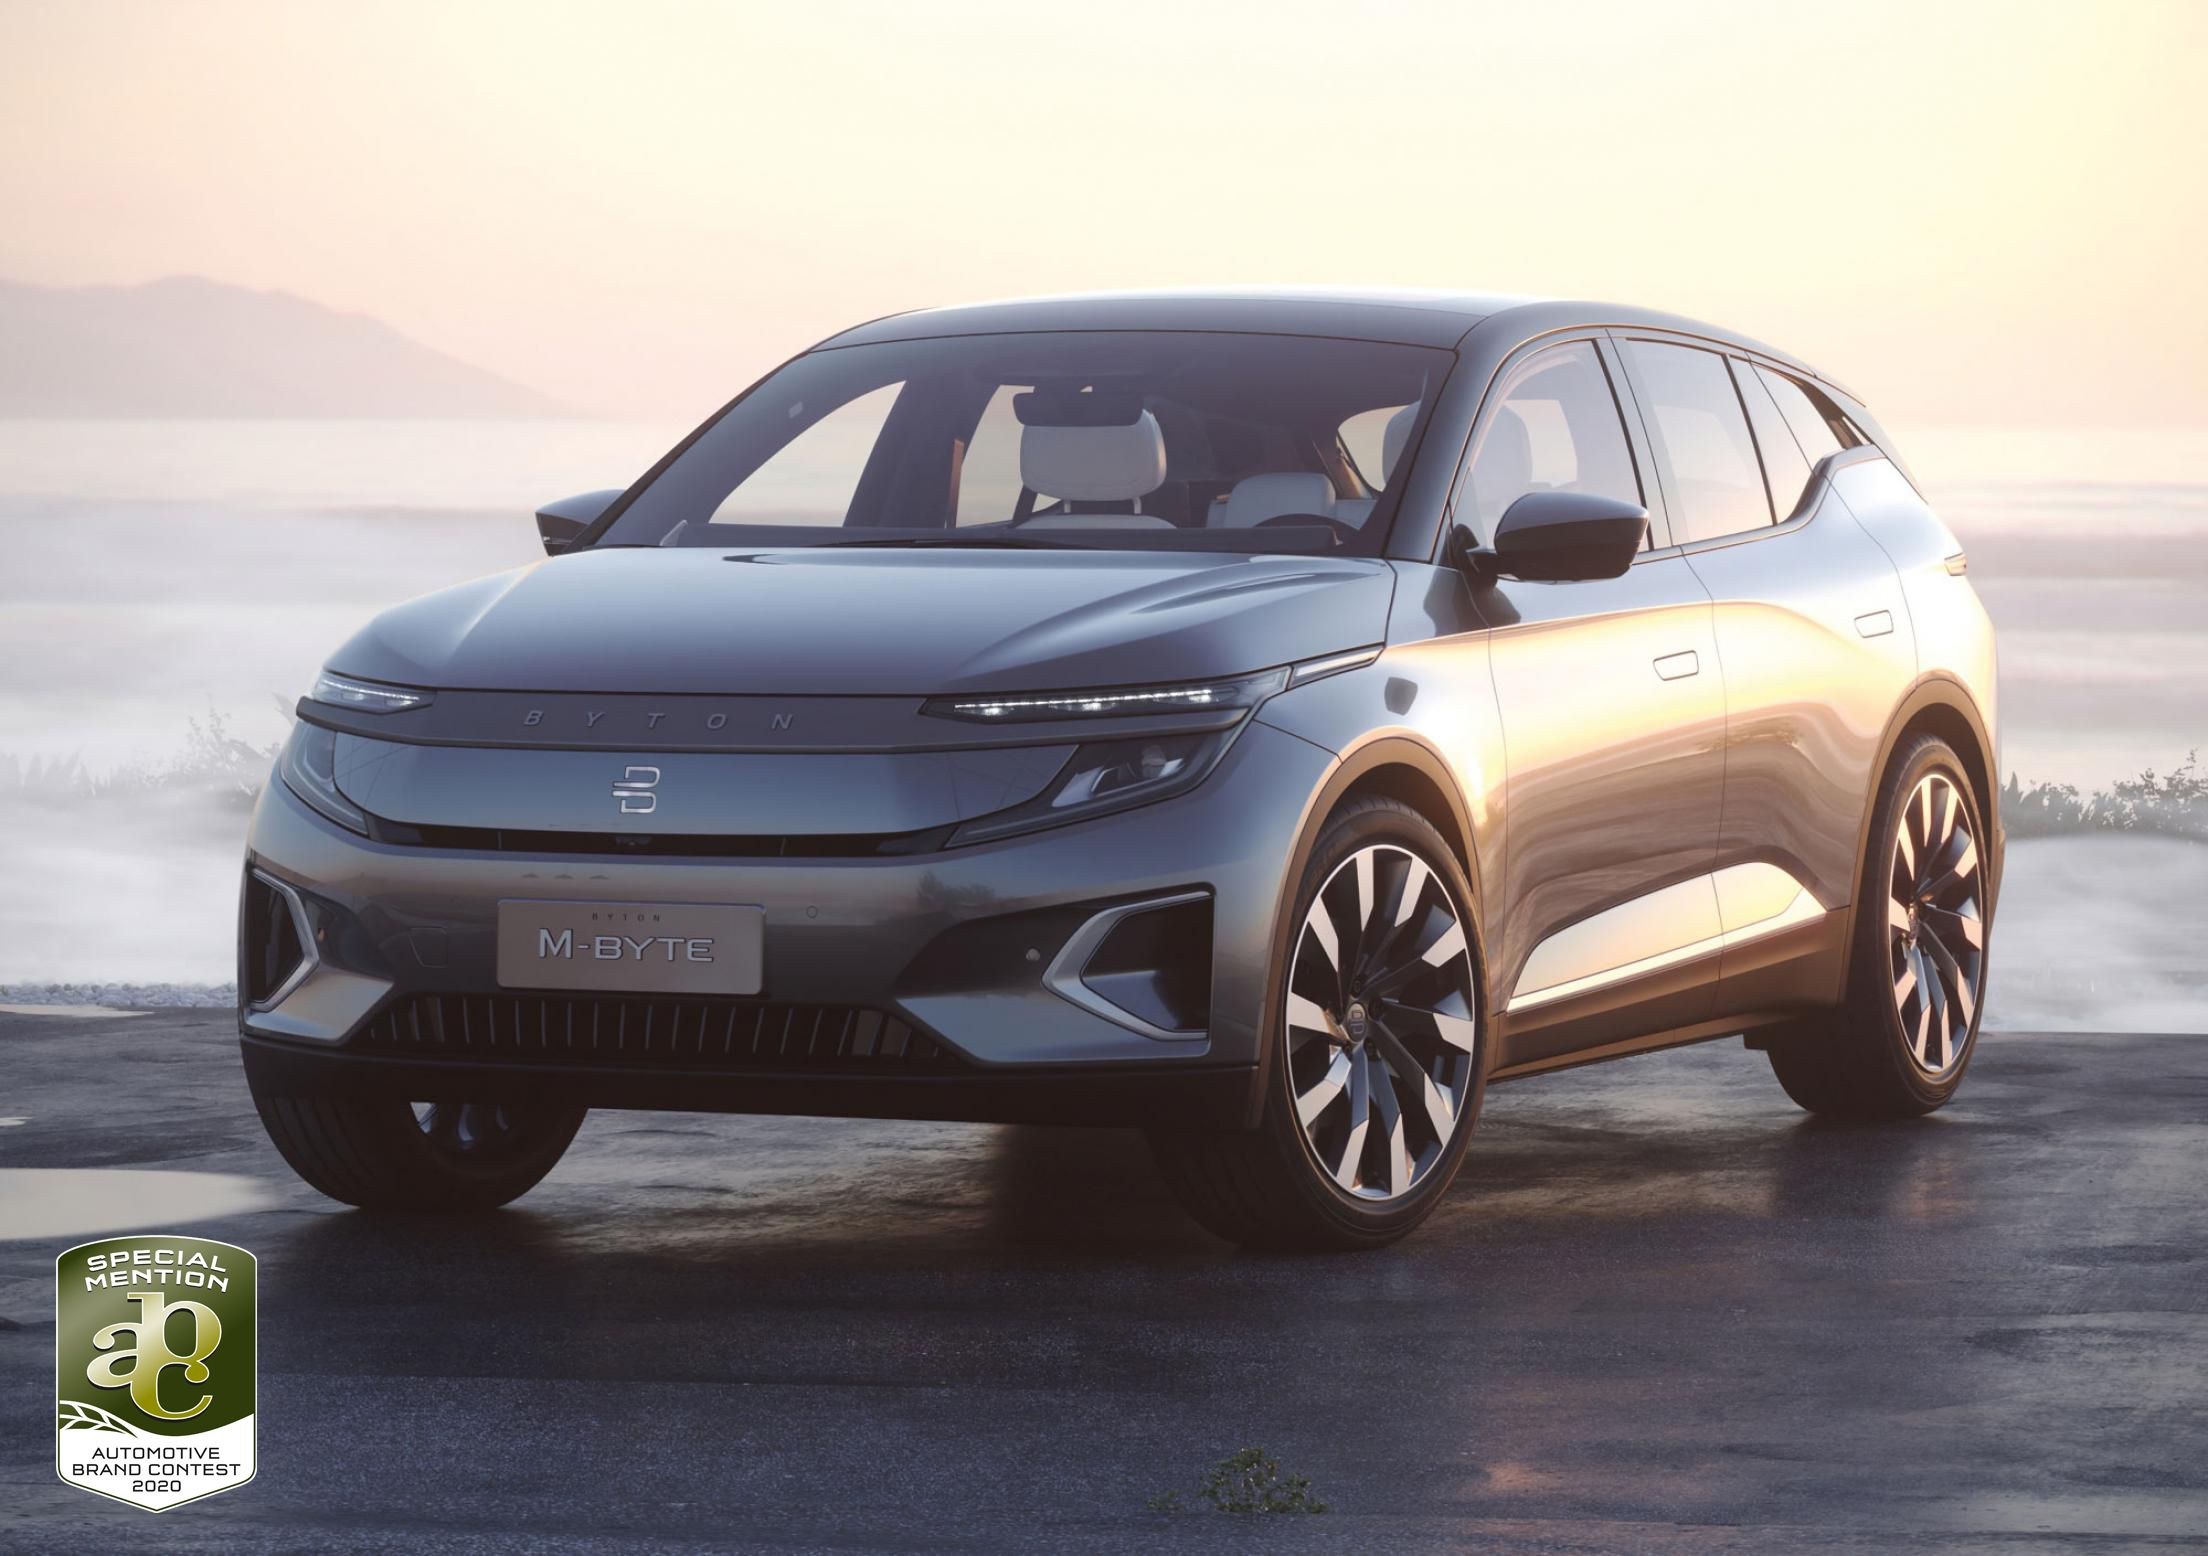 The Byton M Byte Is A Premium Suv And Byton S First Product To Go Into Series Production In Its Own Plant In Nanjing The Byton M Byte Is A Plat In 2020 Suv